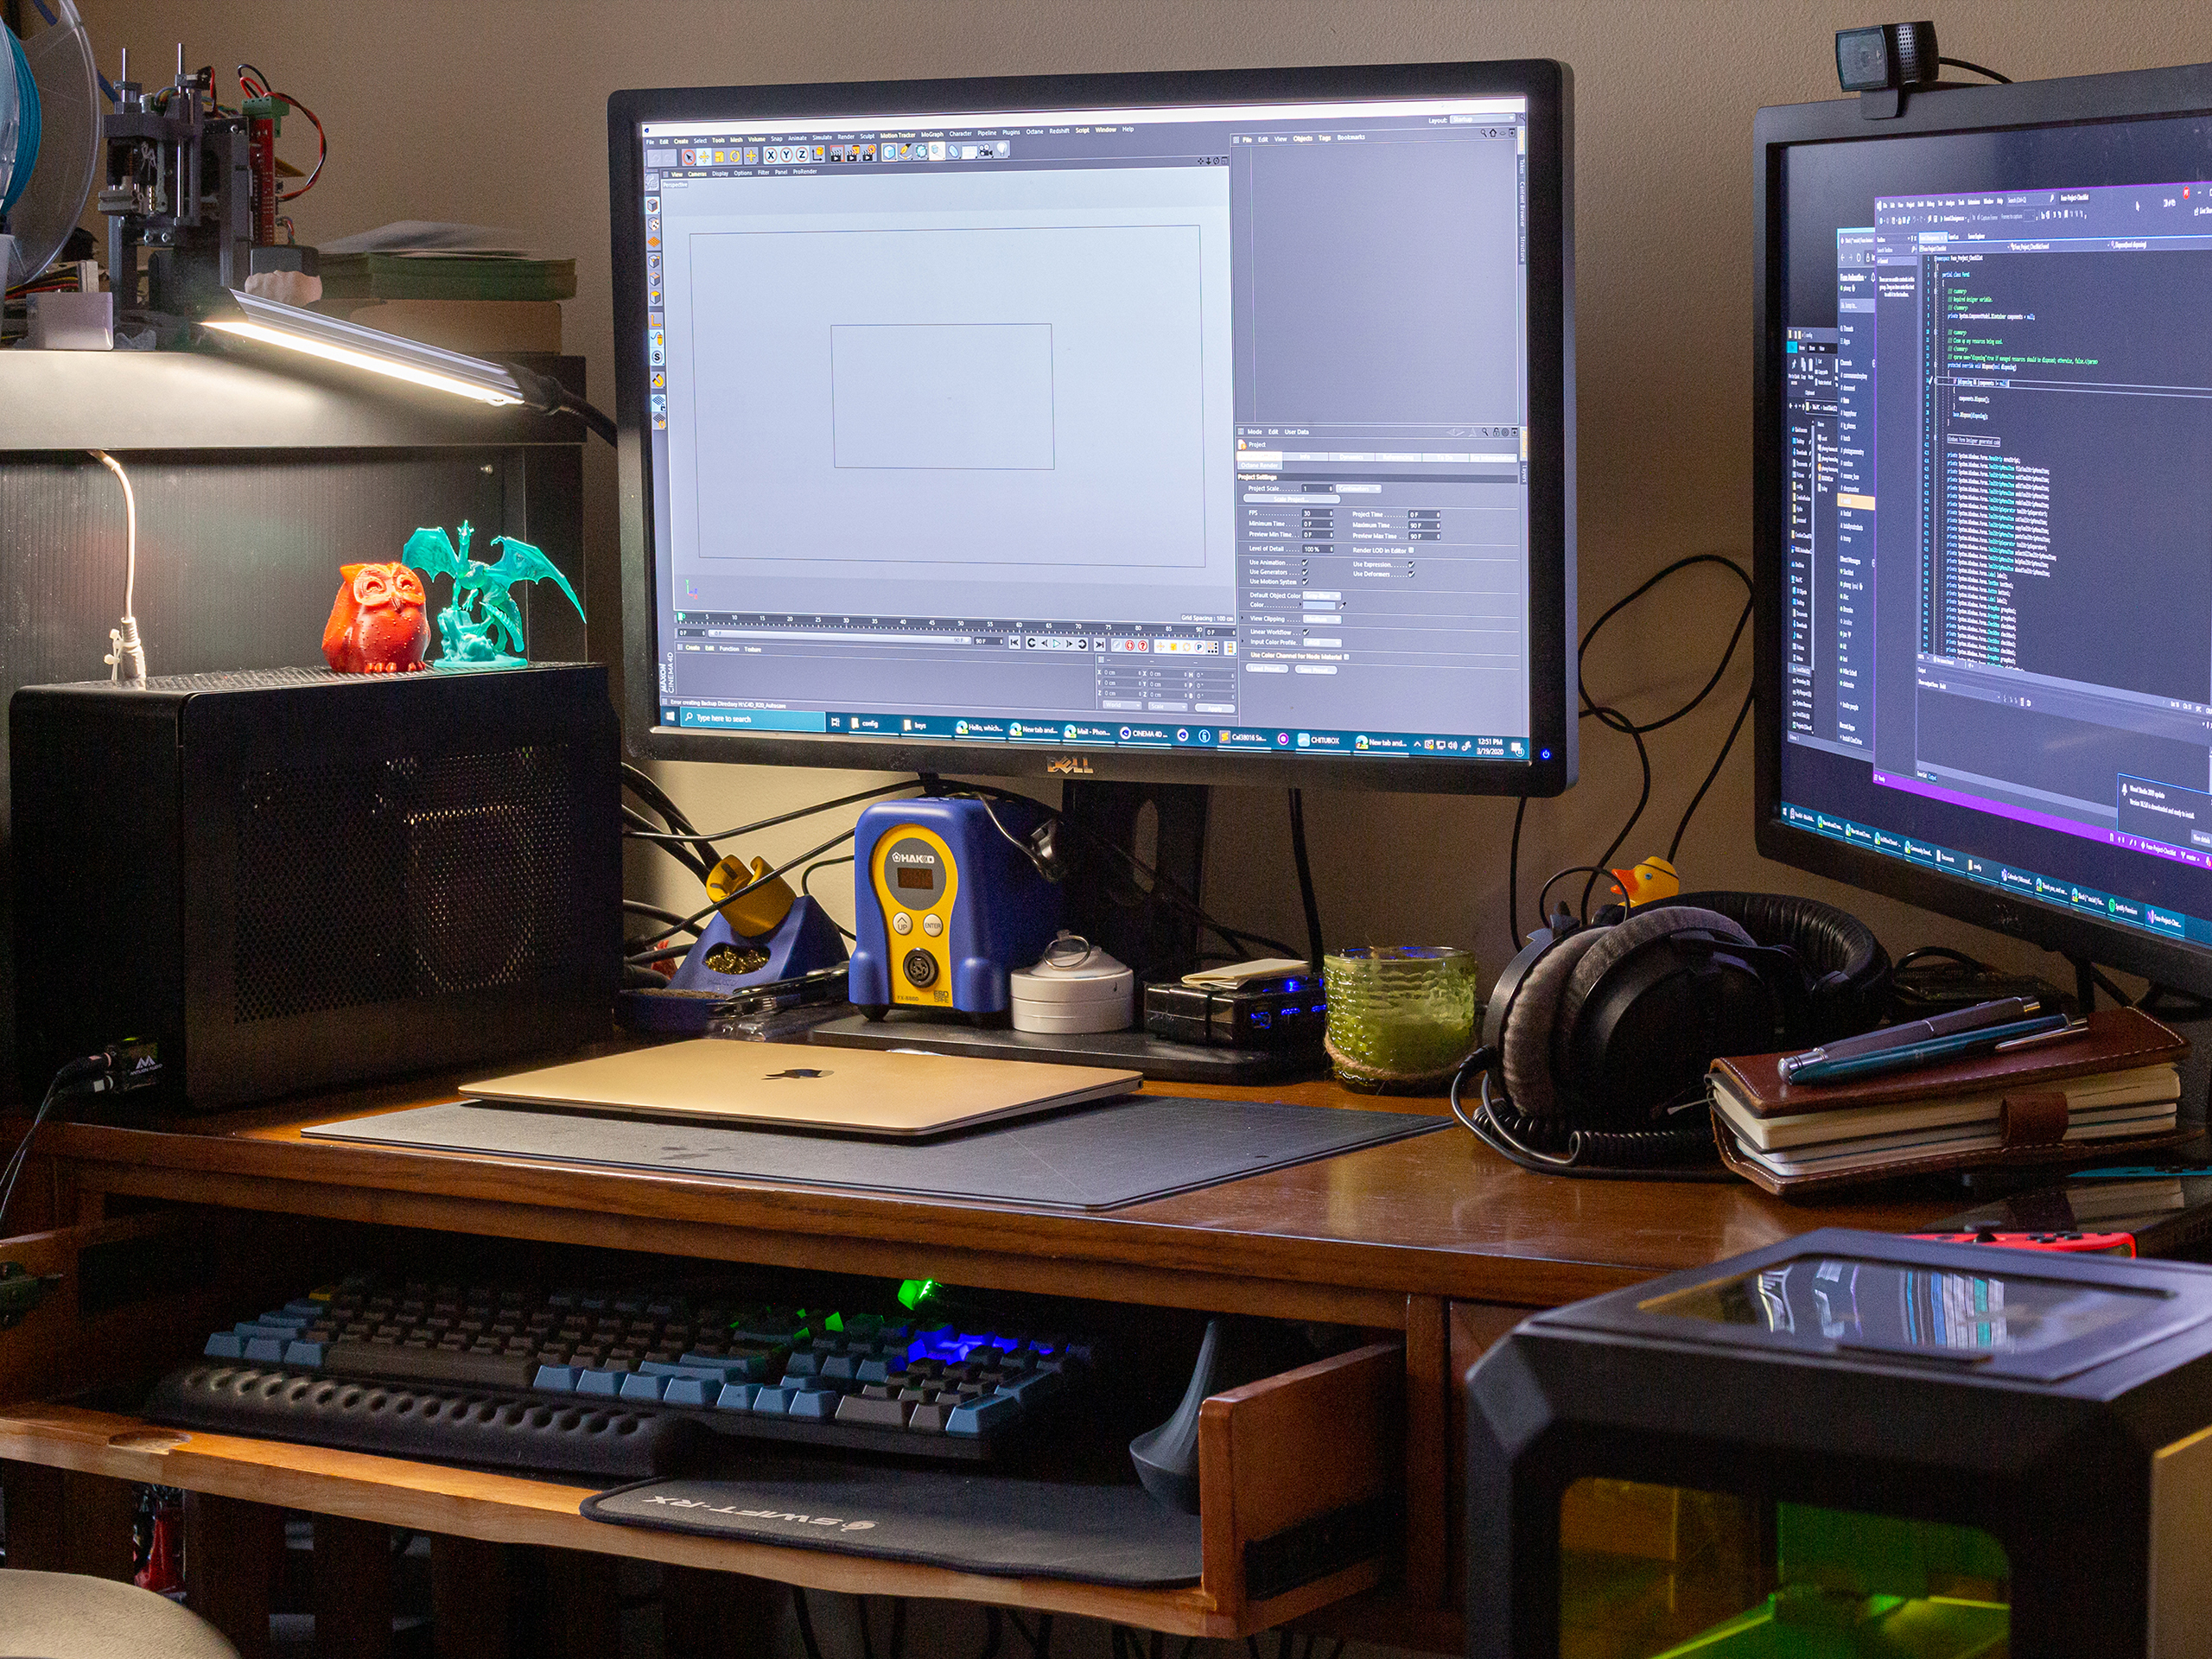 phong's working from home station